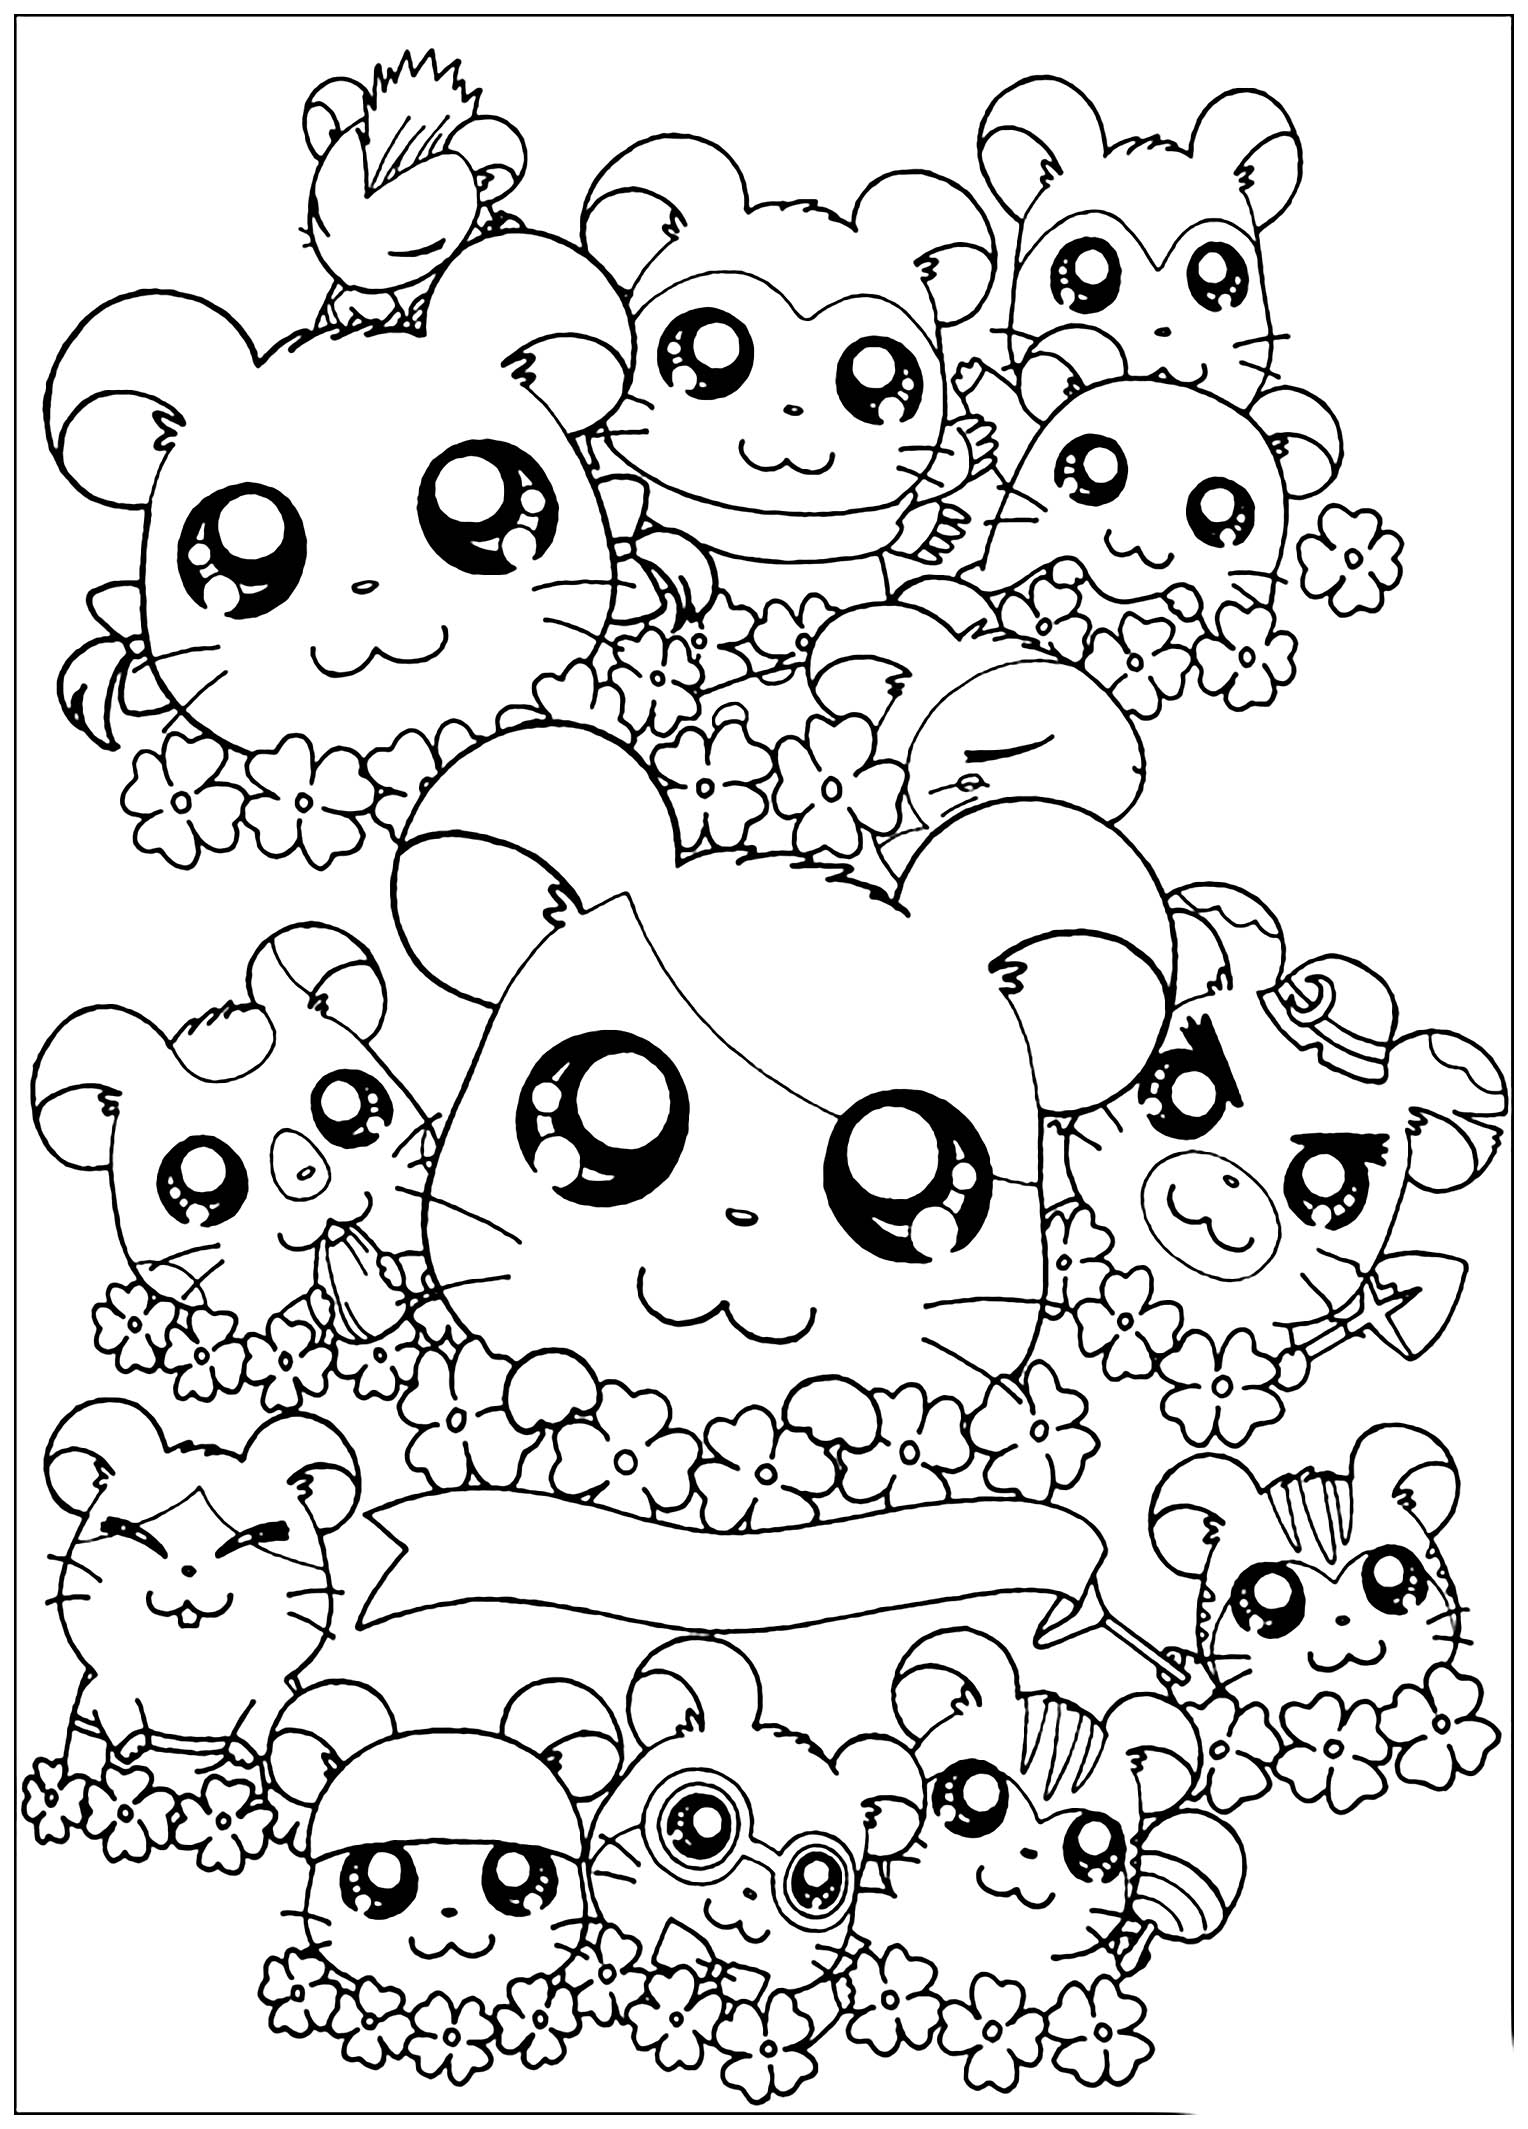 Colorage hamtoro coloriage kawaii coloriages pour enfants - Coloriage kawaii a imprimer ...